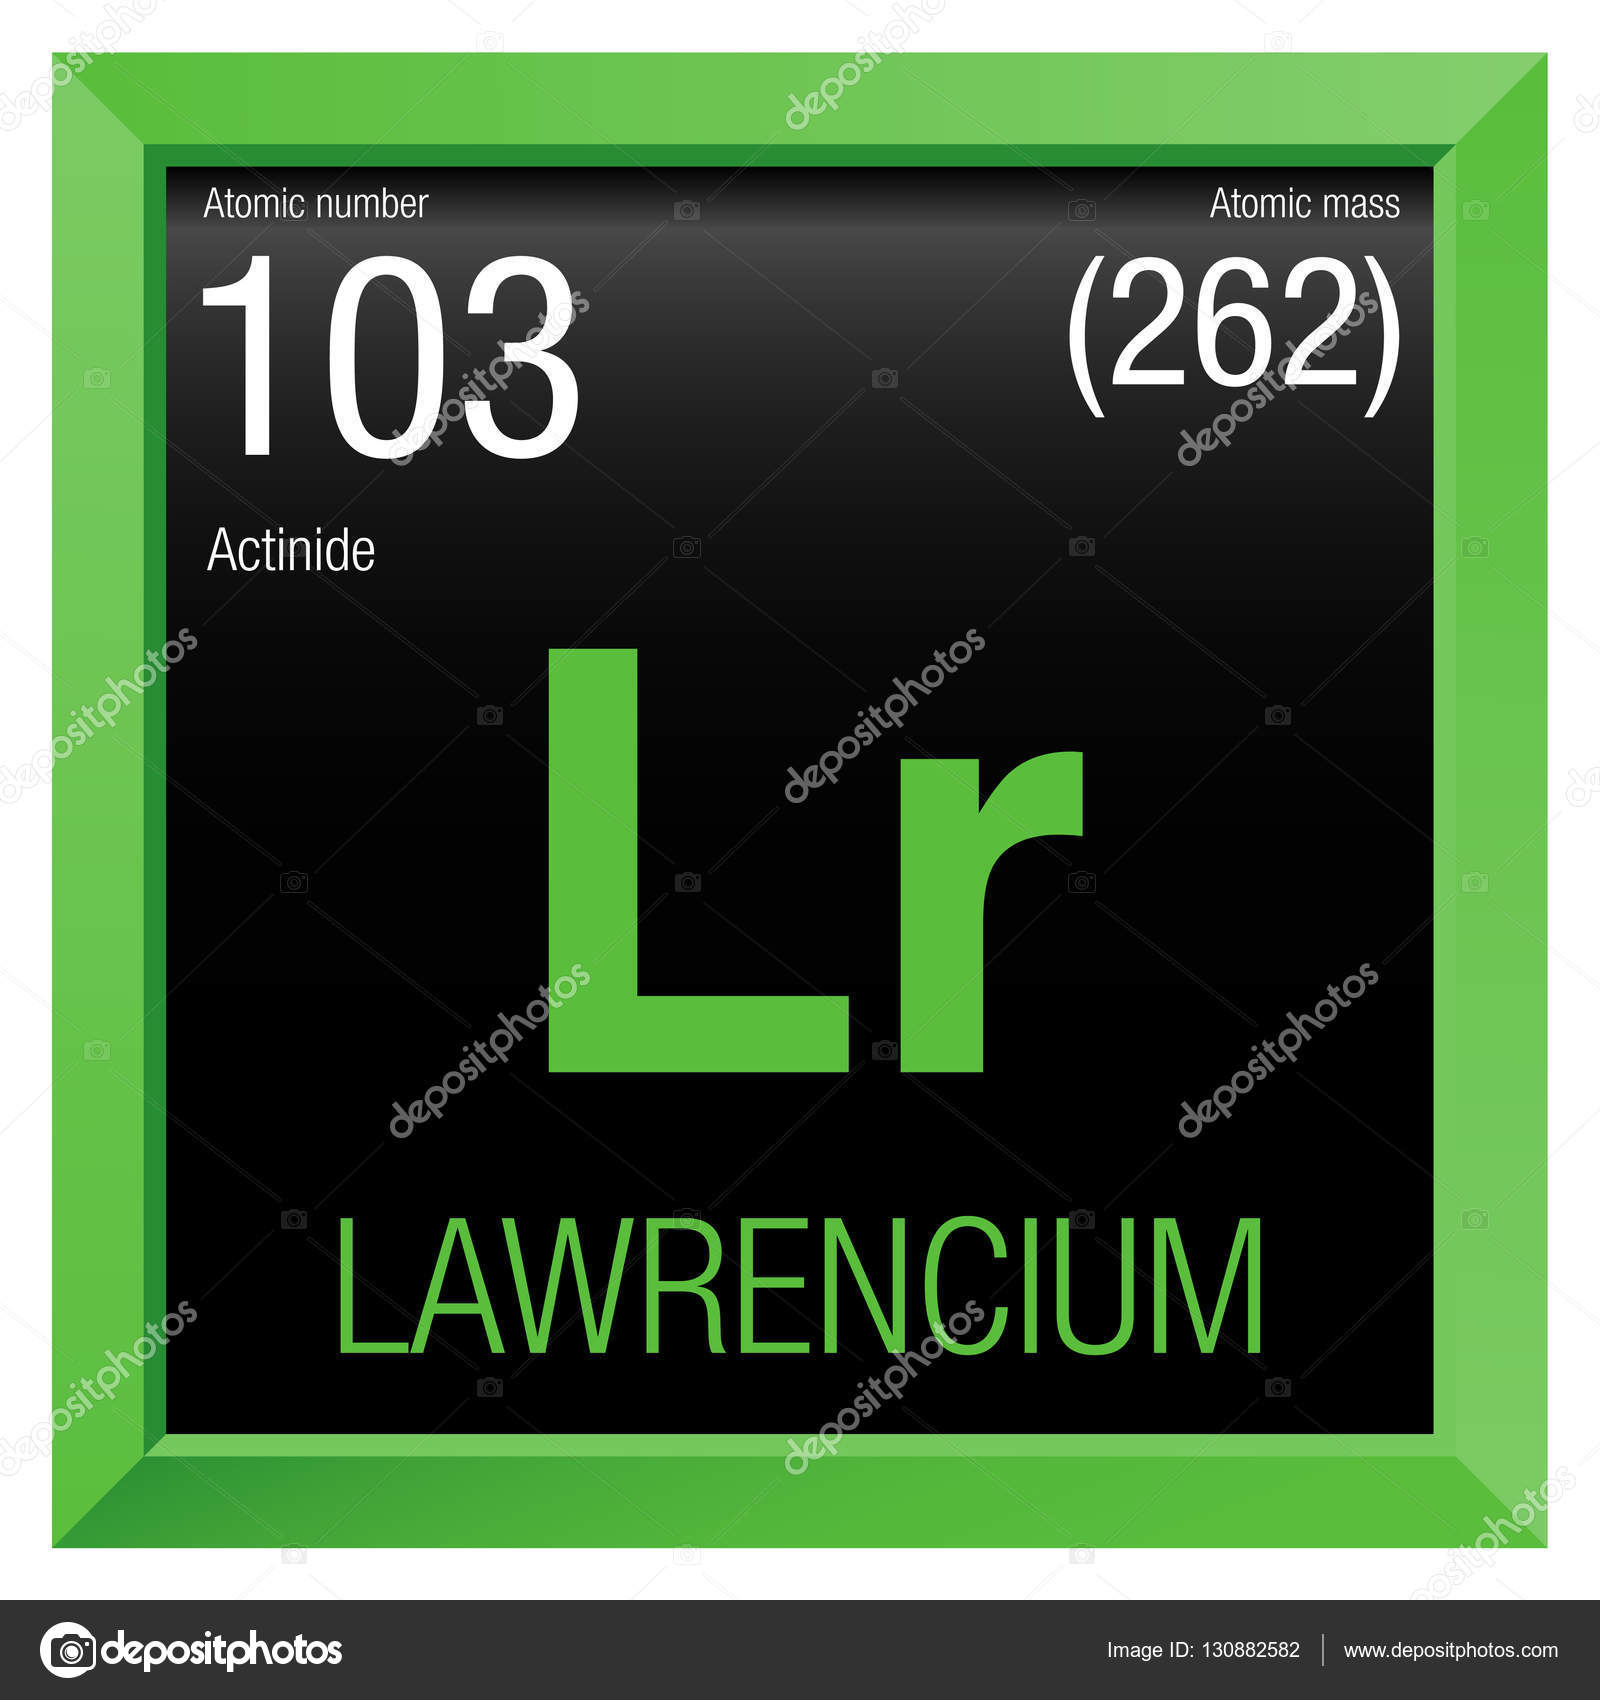 lawrencium periodic table - photo #20